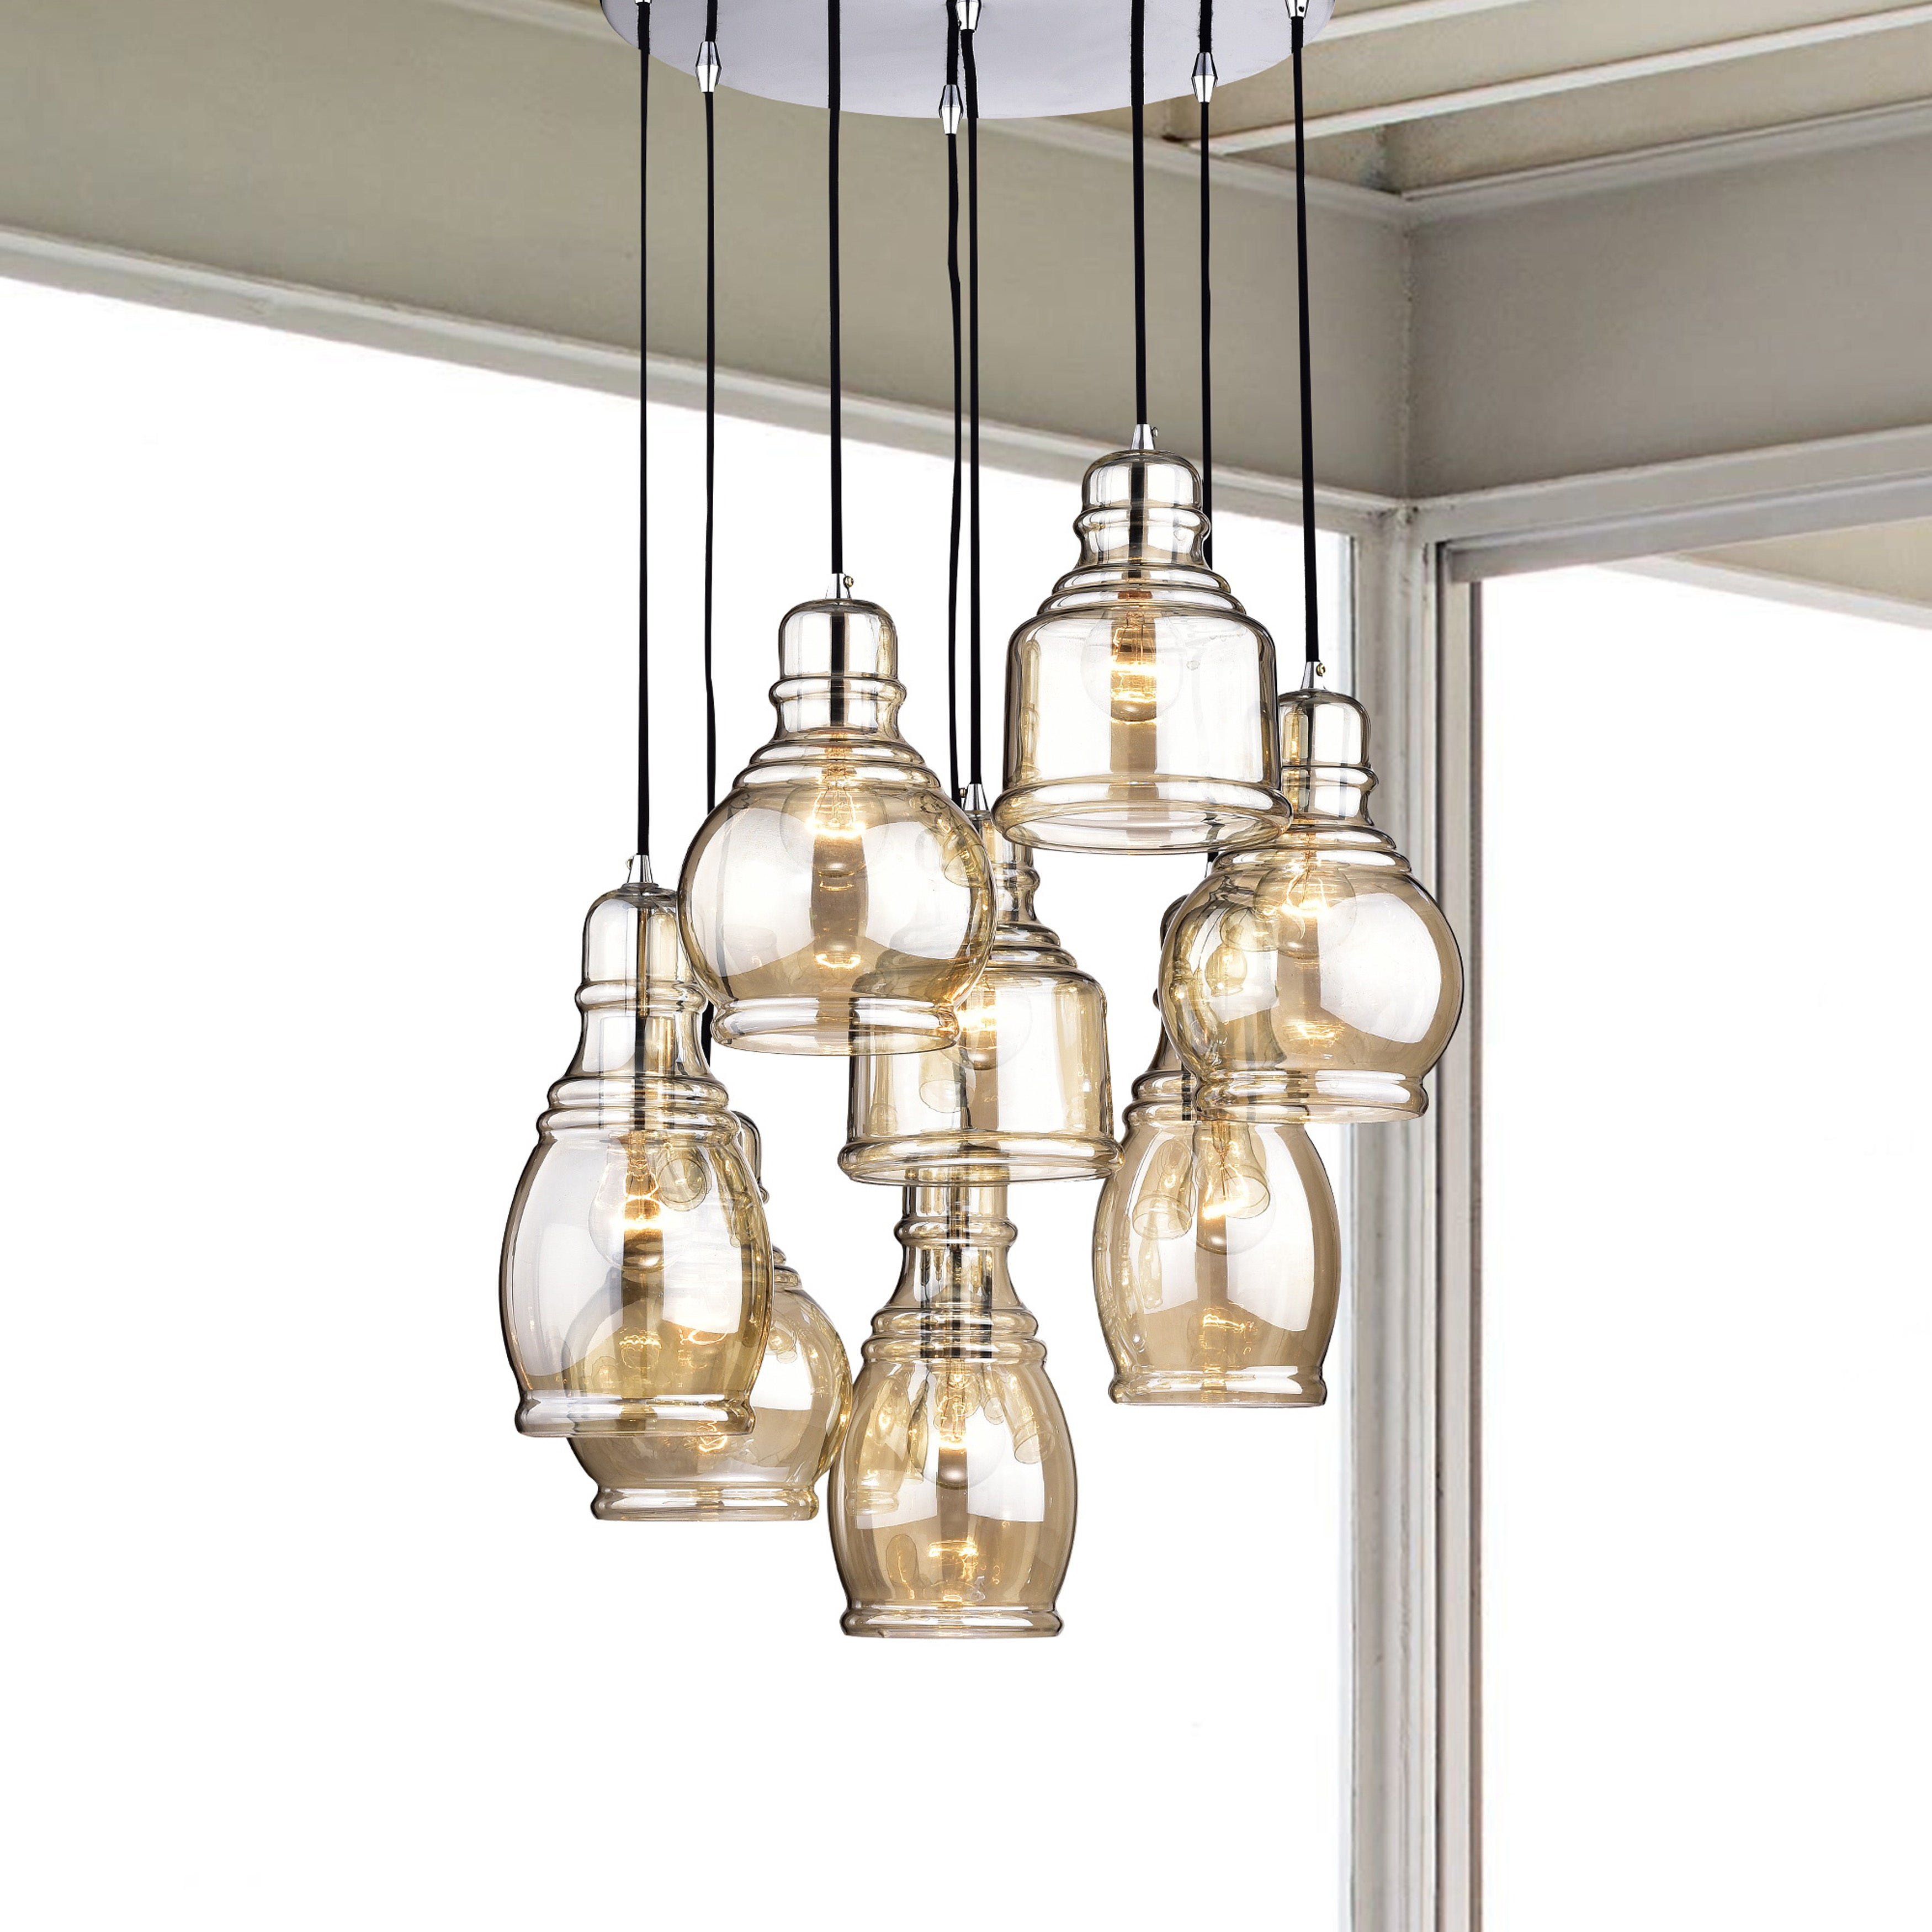 Mariana 8 Light Cognac Glass Cluster Pendant Chandelier With Chrome Finish And Round Base Throughout Pruett Cognac Glass 8 Light Cluster Pendants (View 7 of 30)